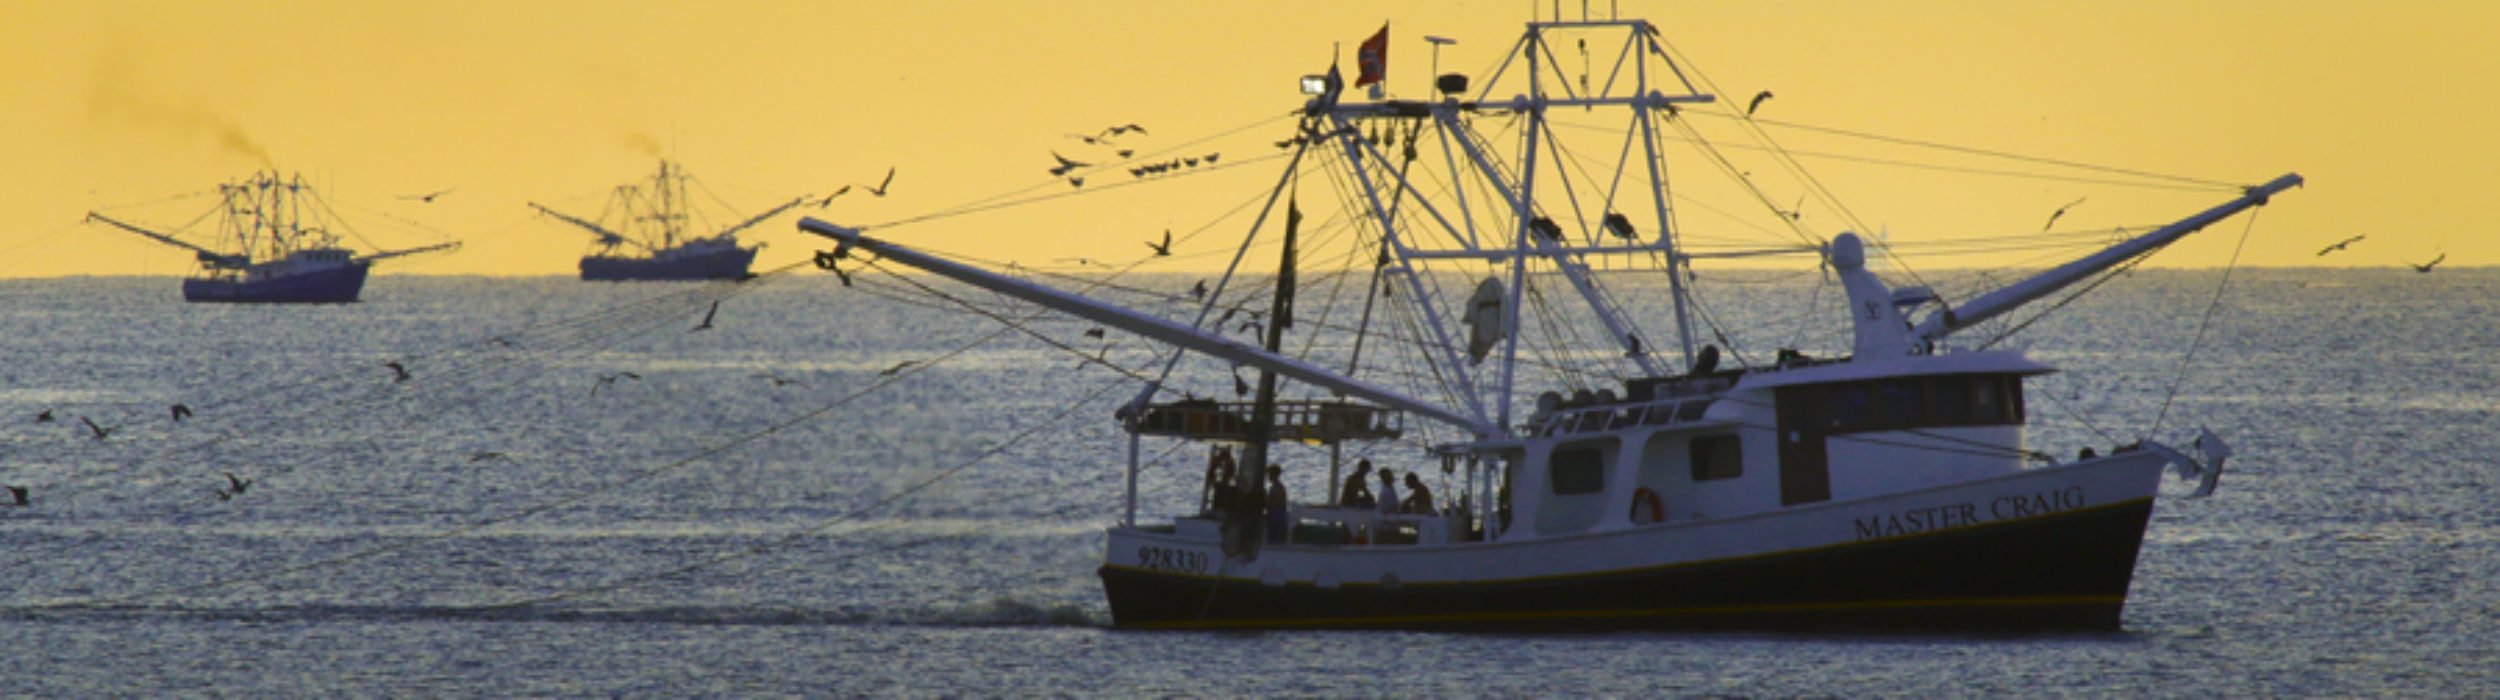 Gulf Seafood Foundation